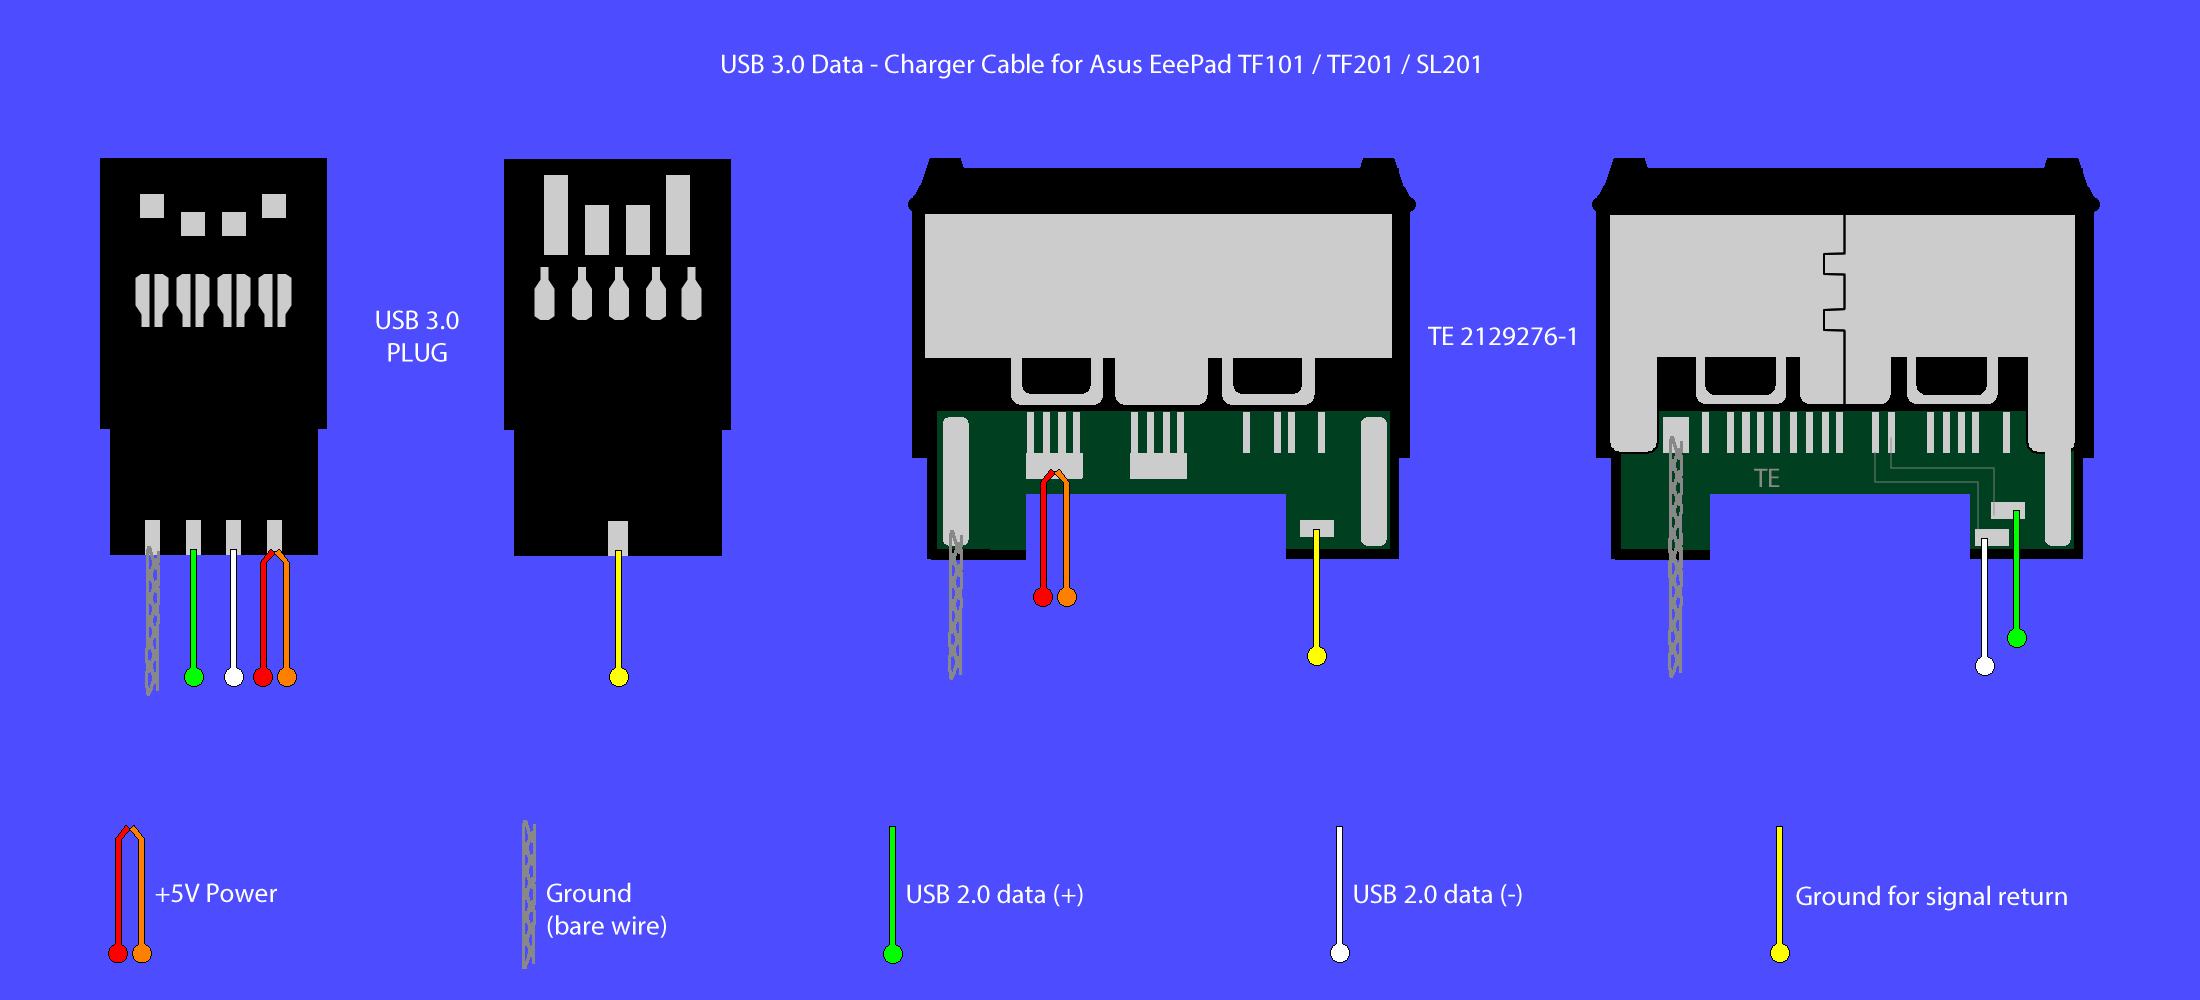 Micro Usb Charger Wiring Diagram | Wiring Diagram - Usb Nook Wiring Diagram